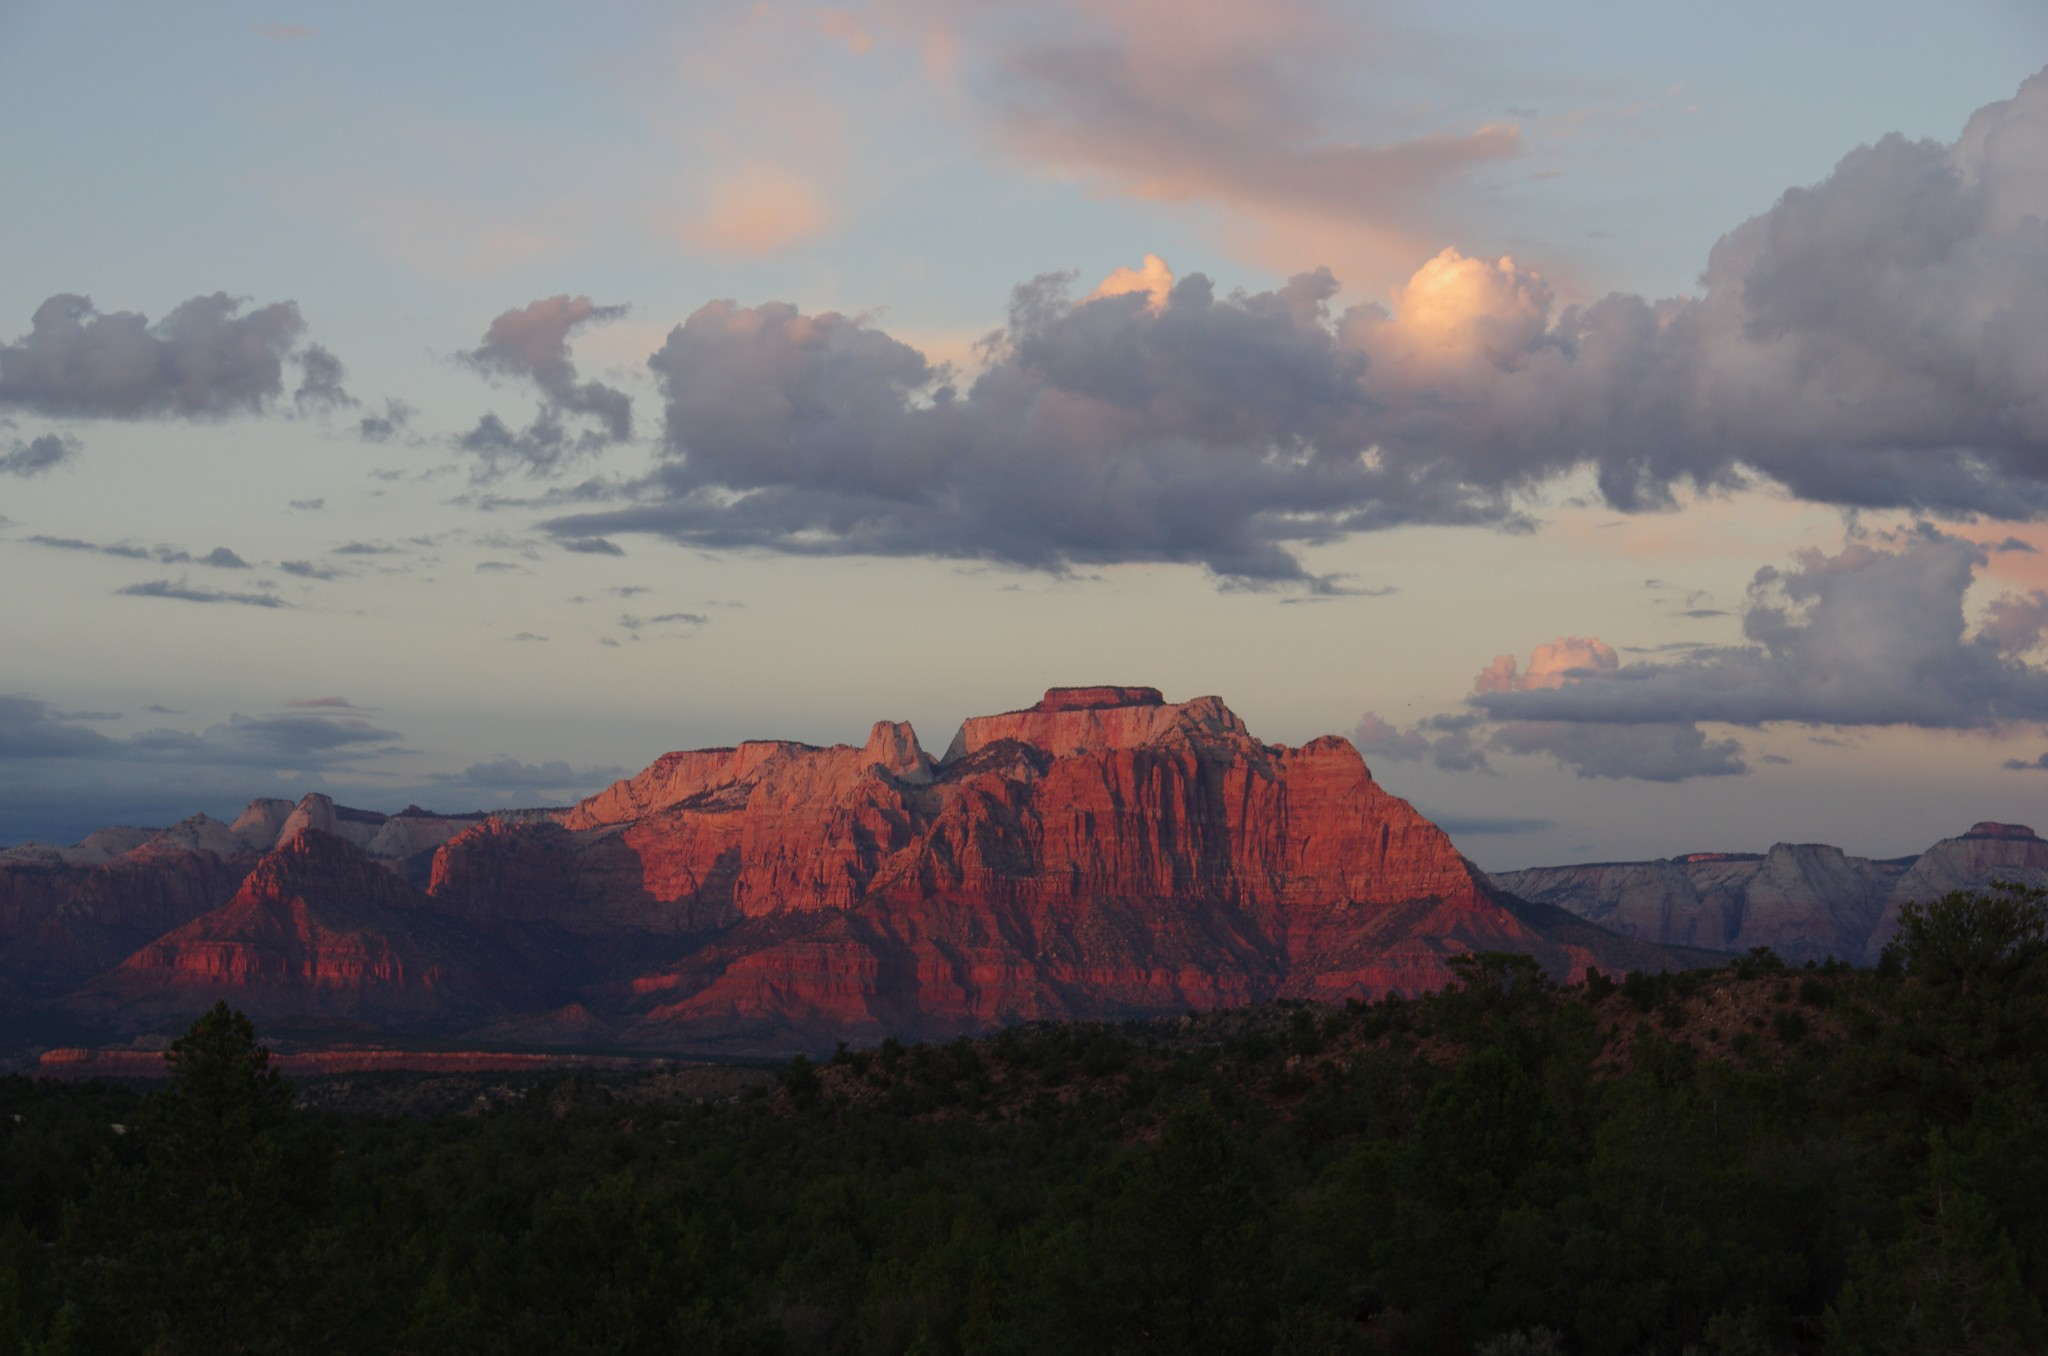 Sunset @ Gooseberry Mesa – West Temple, Zion NP, UT